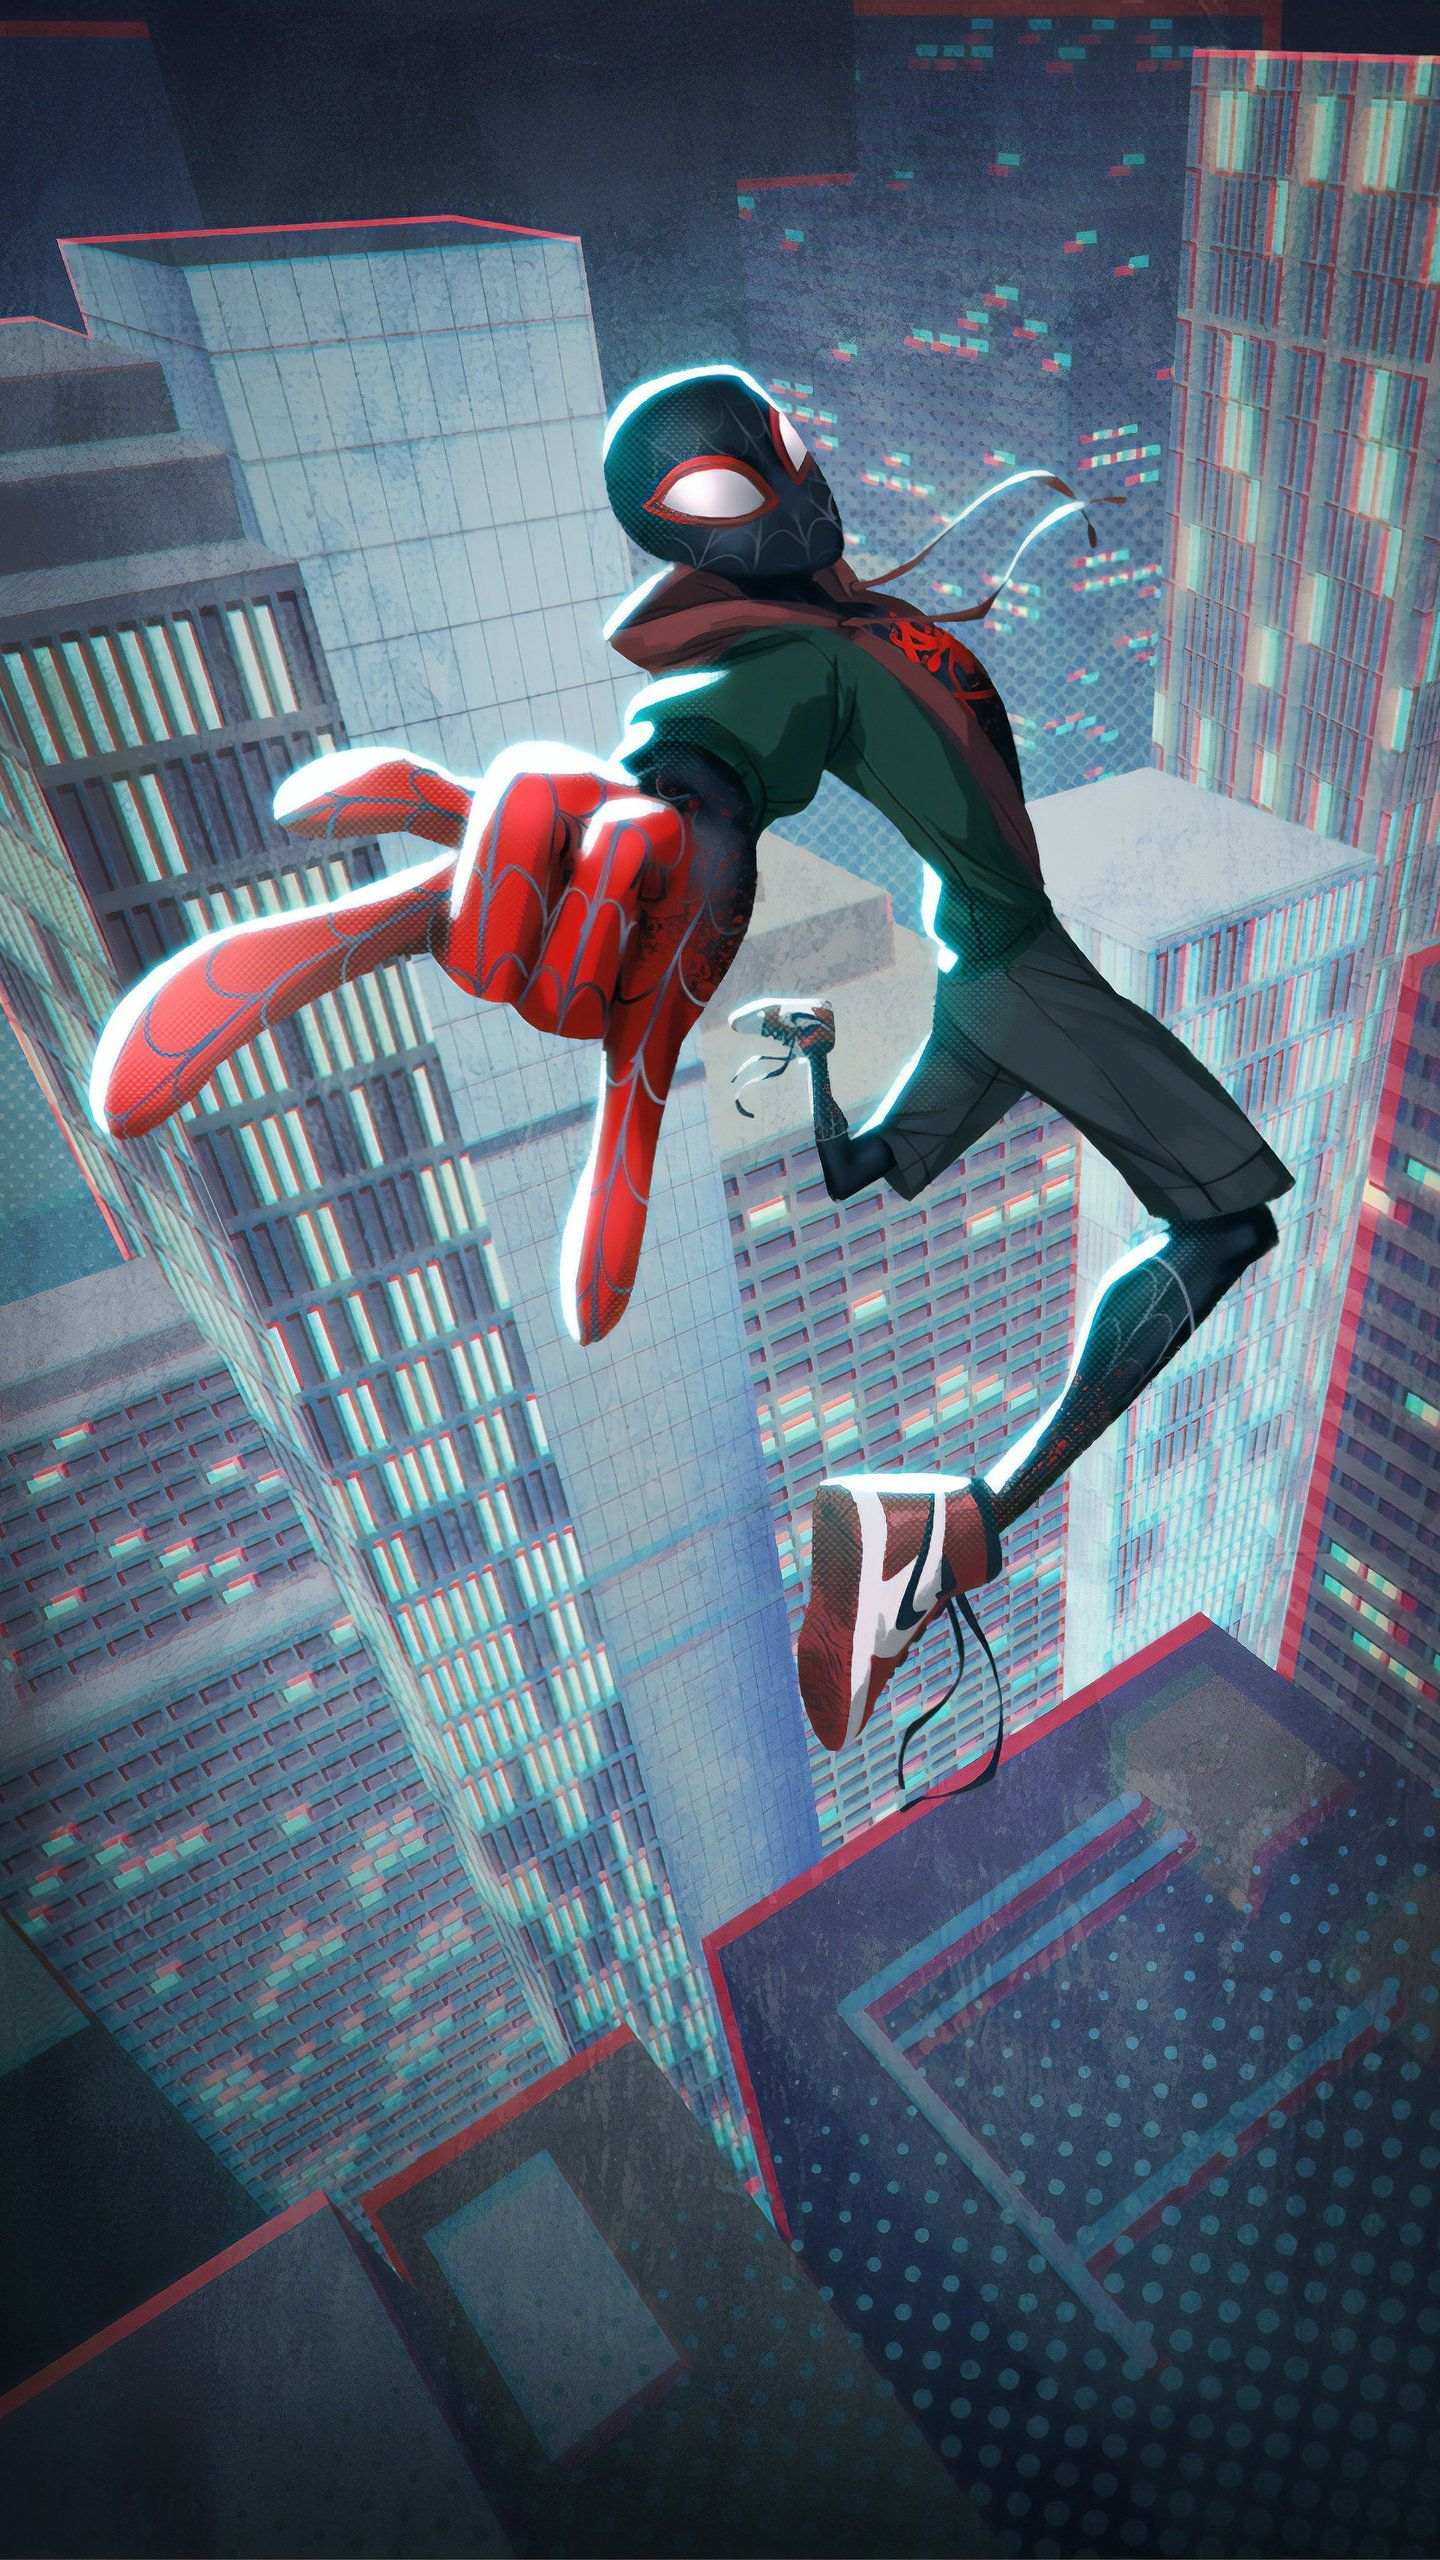 Pin By Wijee Calungcaguin On Spidey In 2020 Spiderman Spiderman